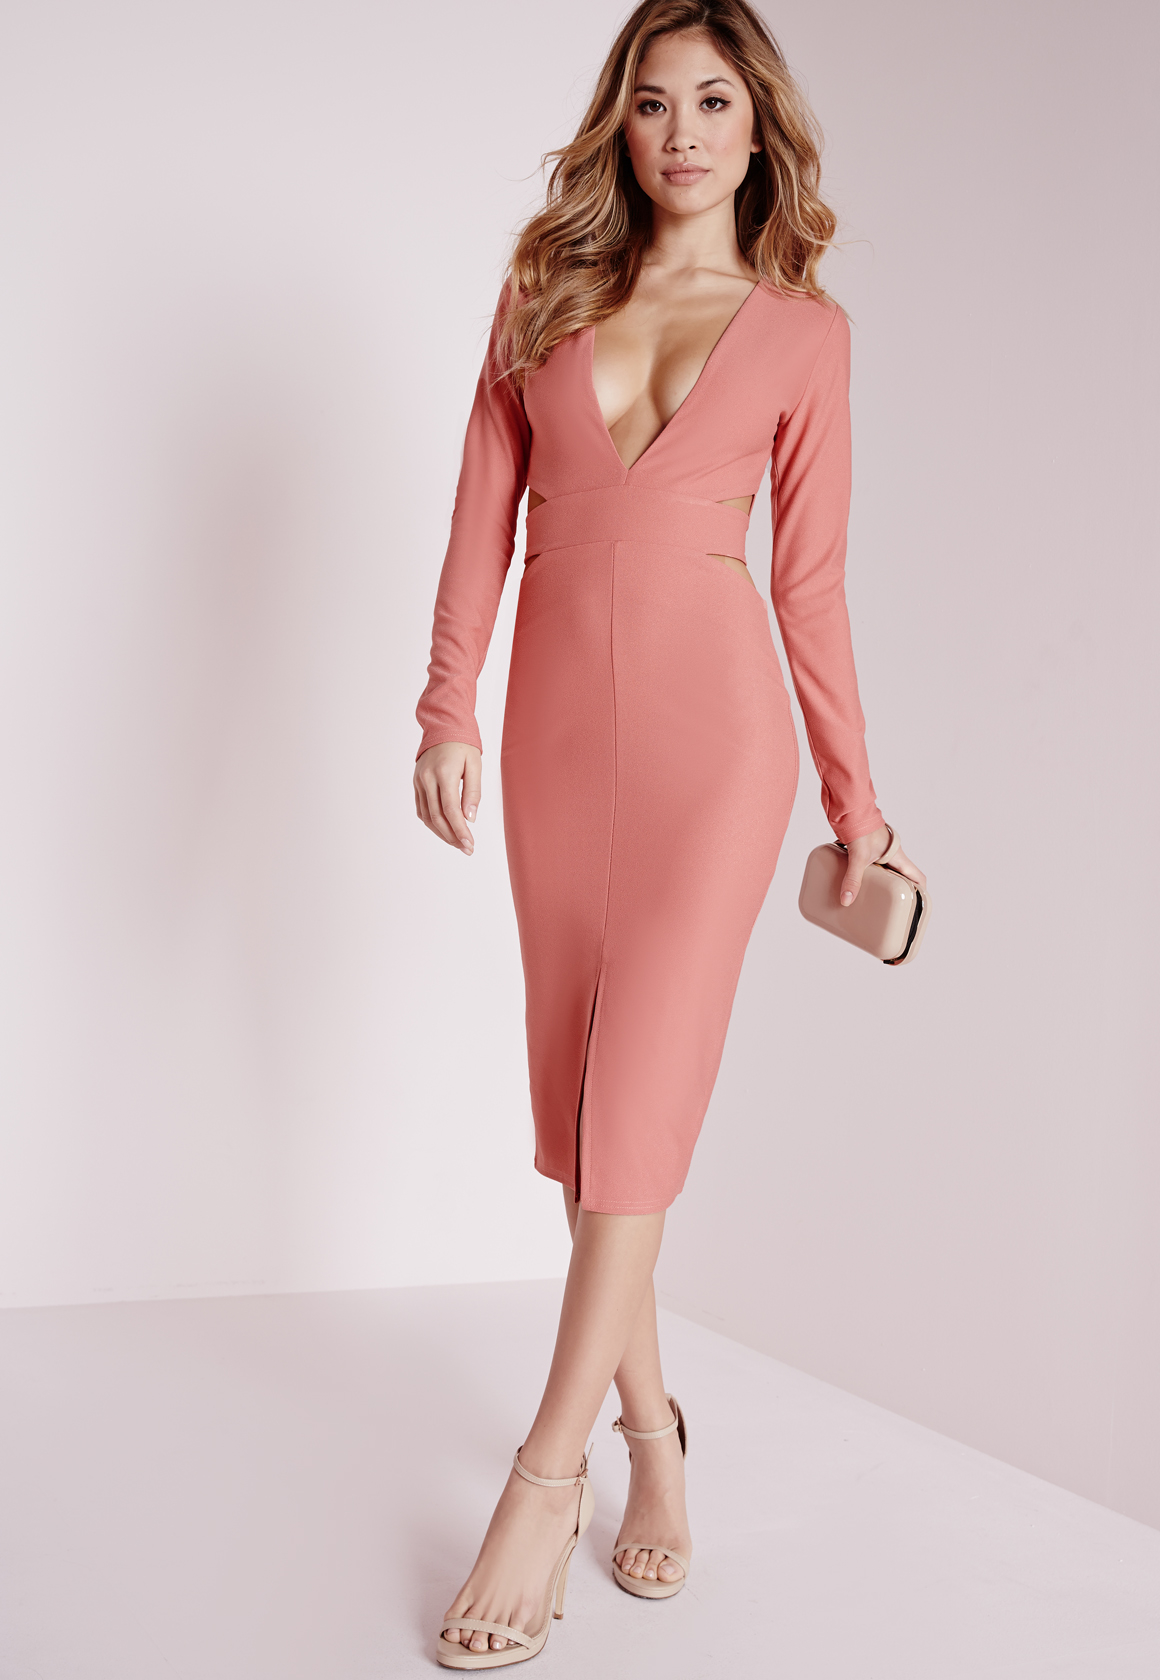 Lyst Missguided Crepe Long Sleeve Cut Out Midi Dress Rose Pink In Pink